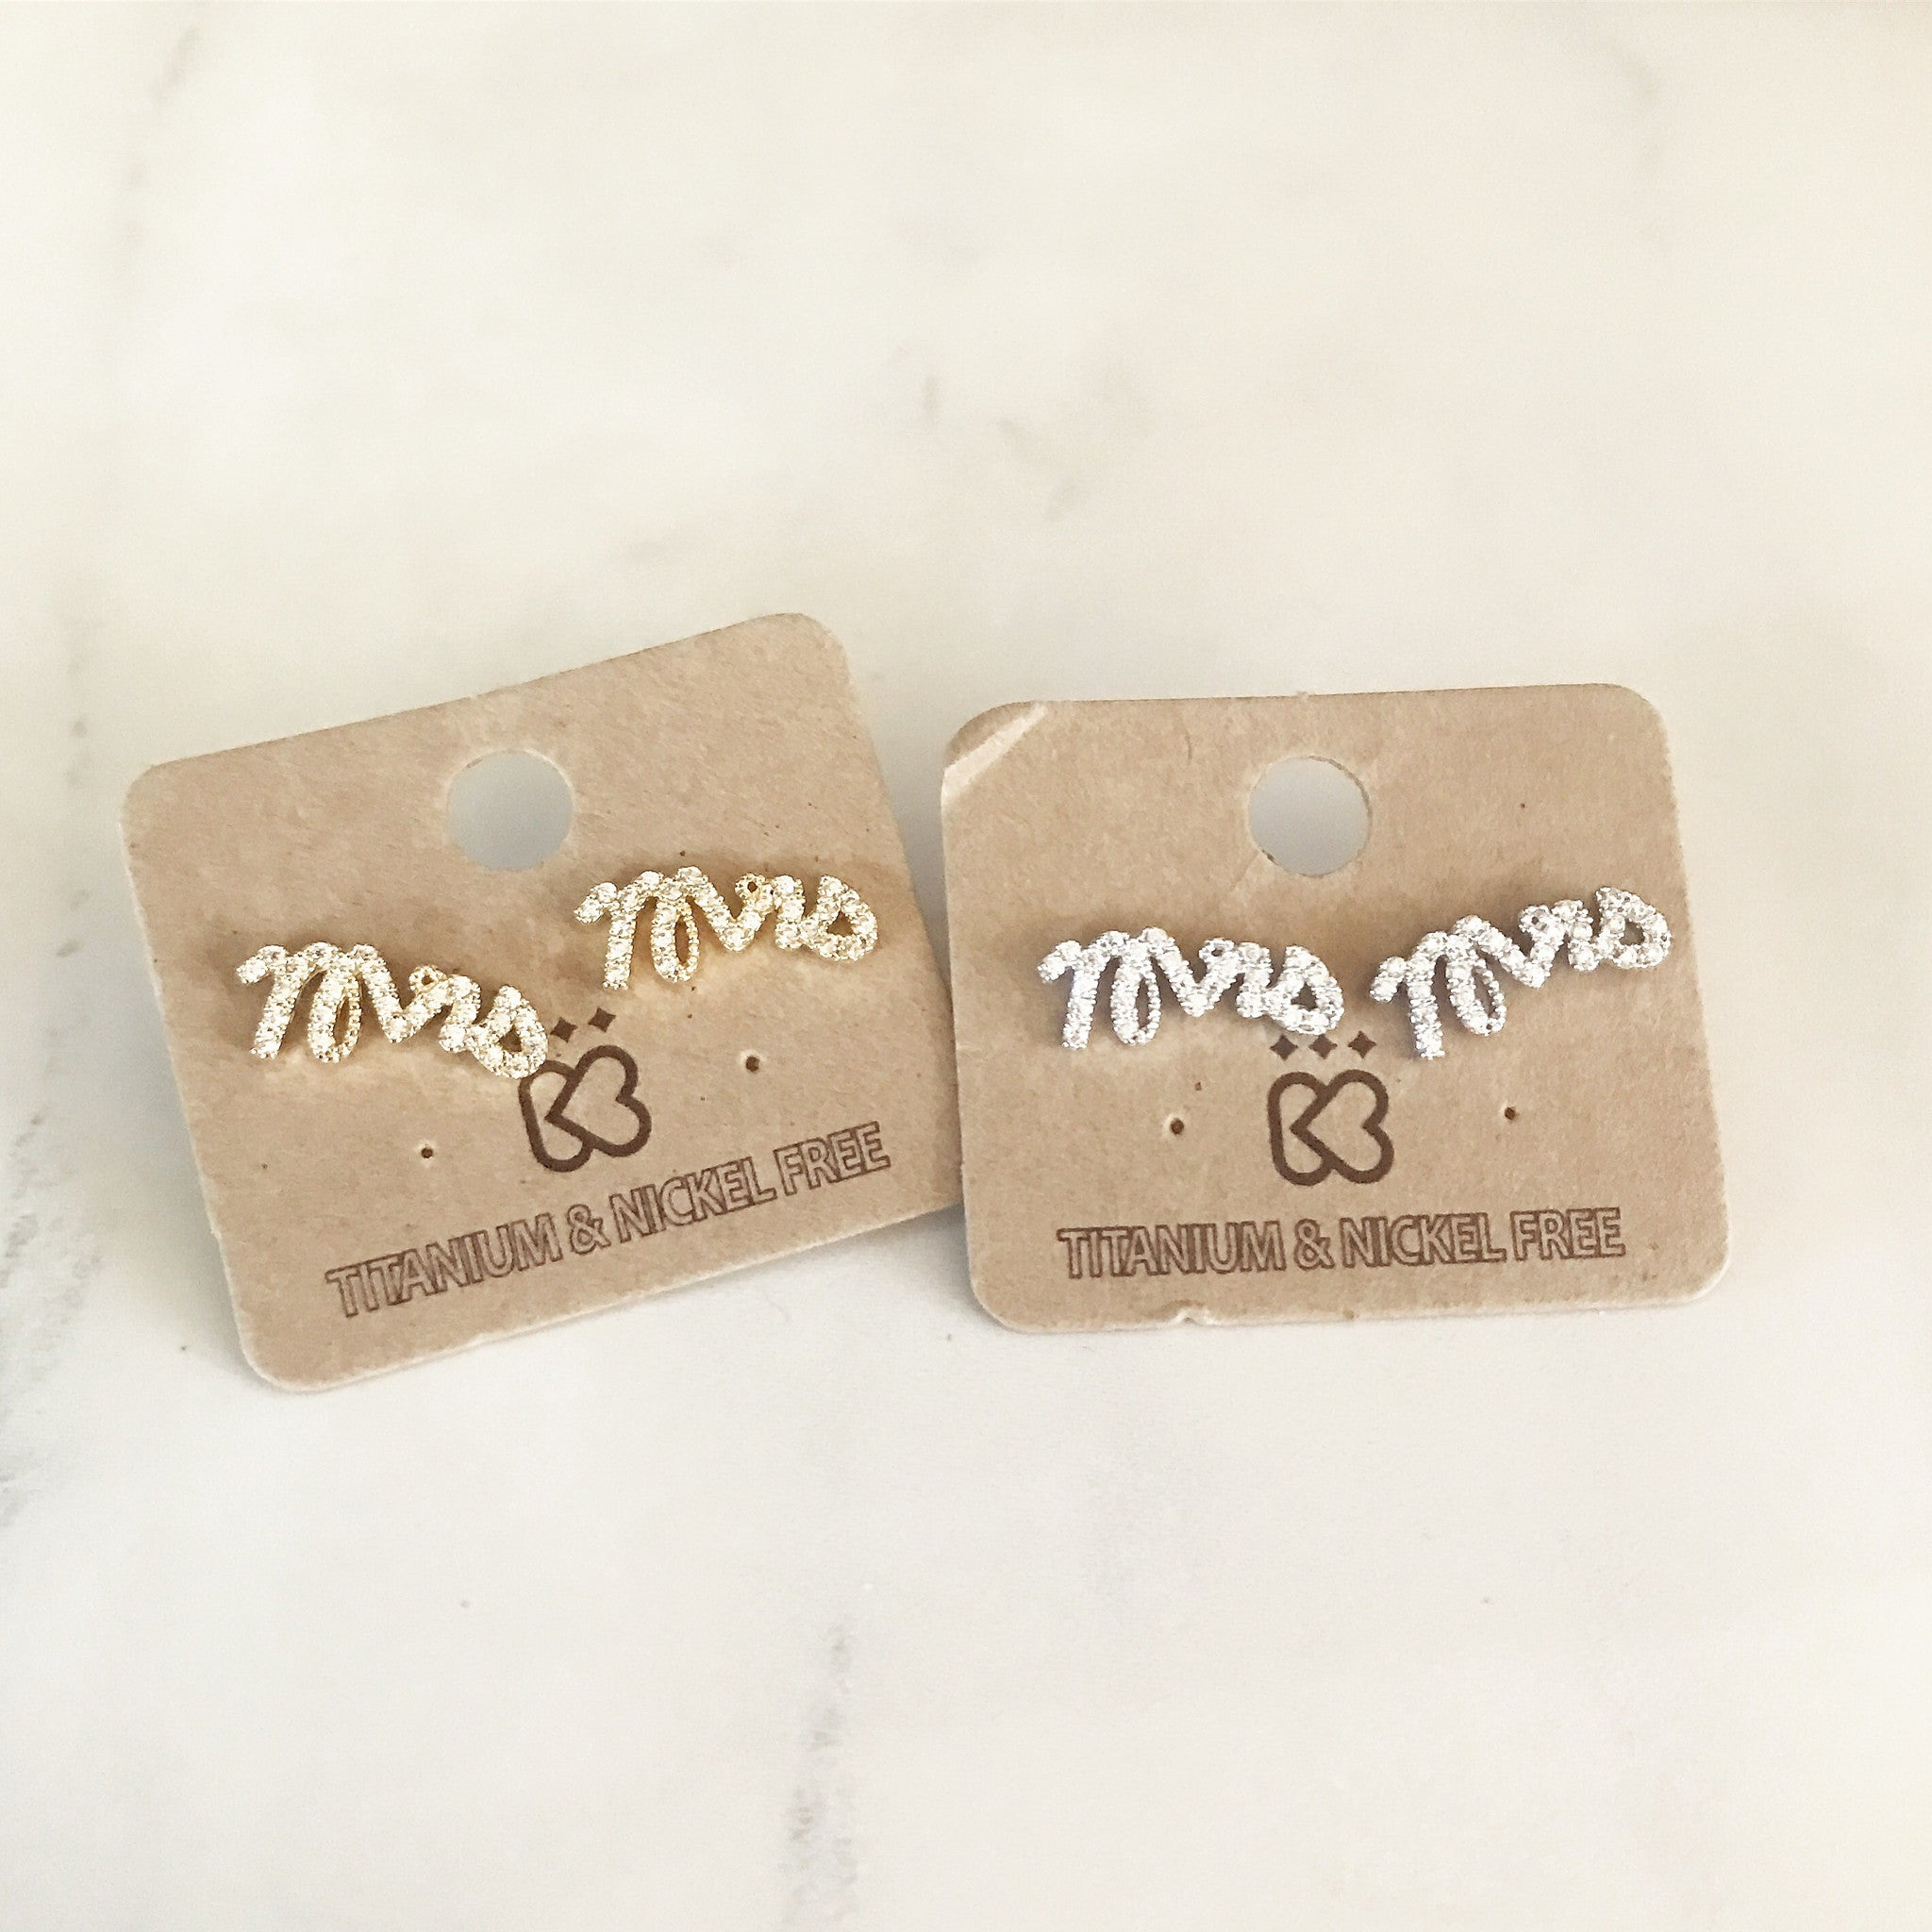 PAVE MRS -Earrings